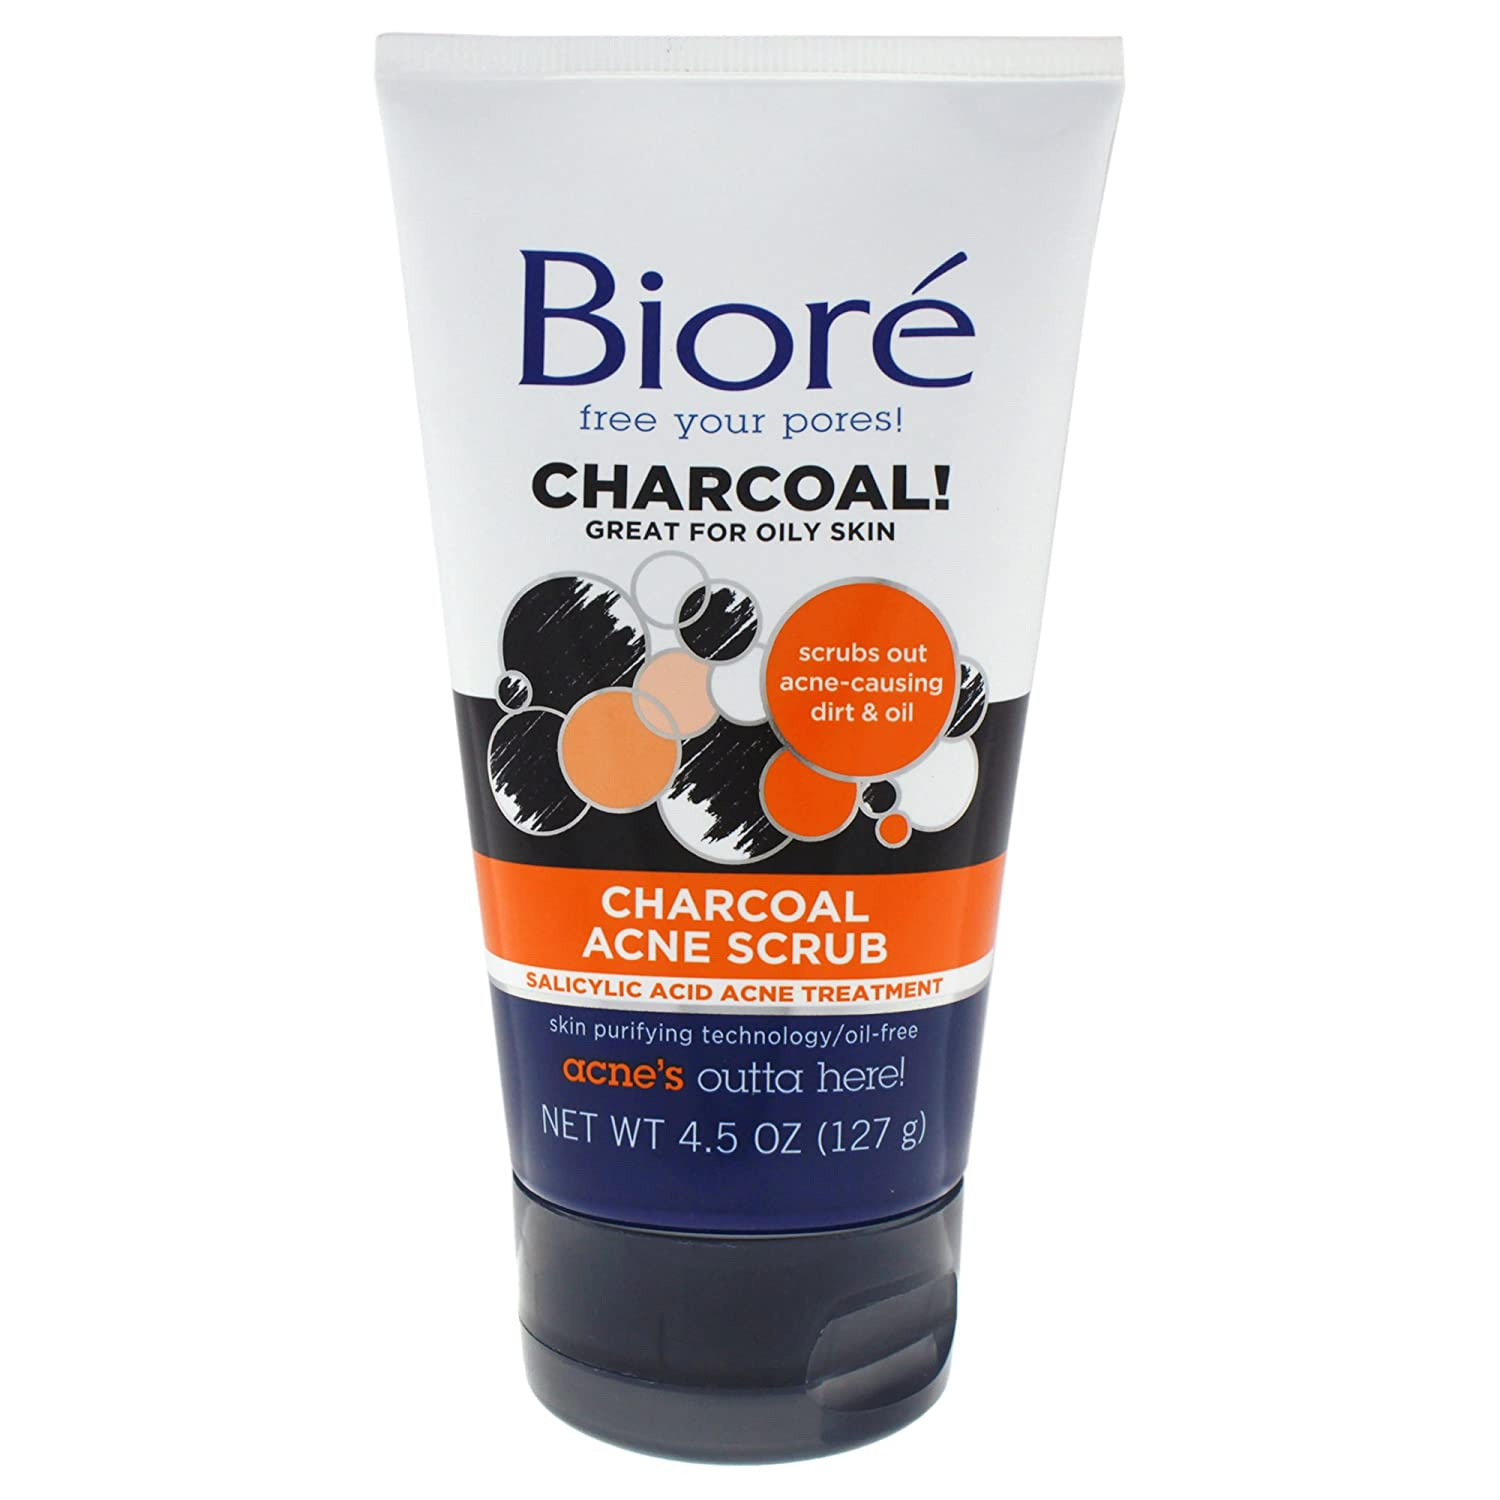 Bioré Charcoal Acne Clearing Cleanser for Oily Skin (6.77oz) KAO Brands